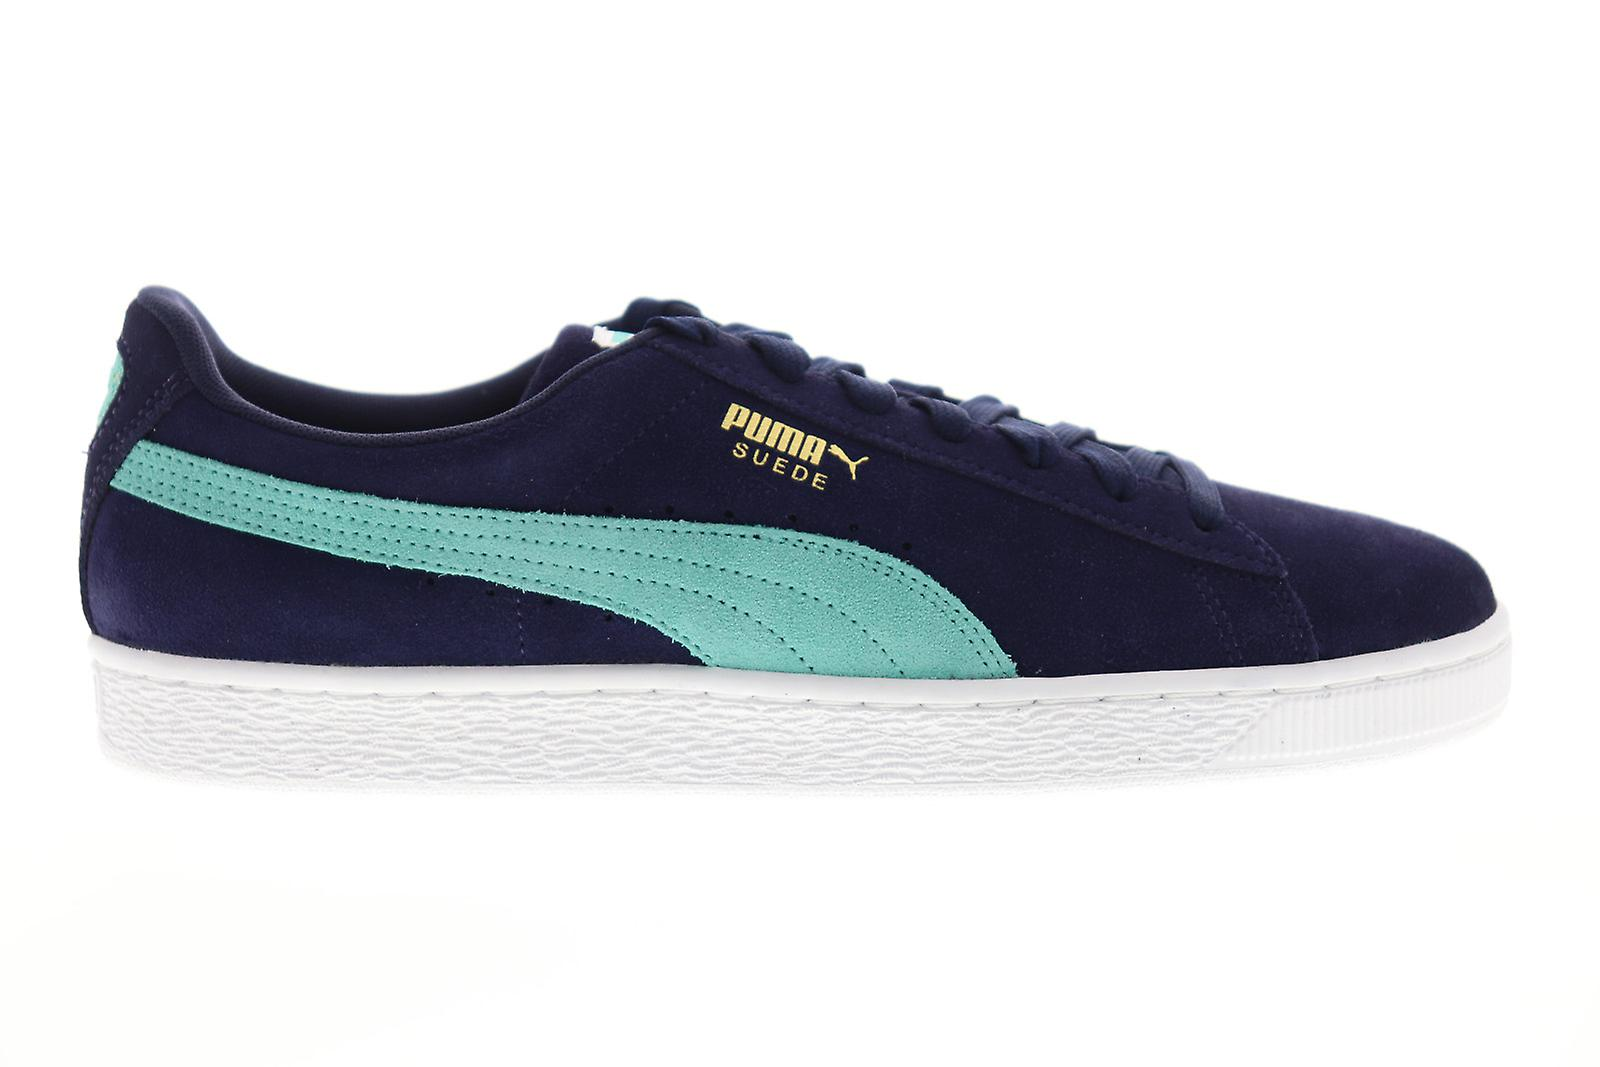 newest 08188 54ac5 Puma Suede Classic Mens Blue Suede Low Top Lace Up Sneakers Shoes